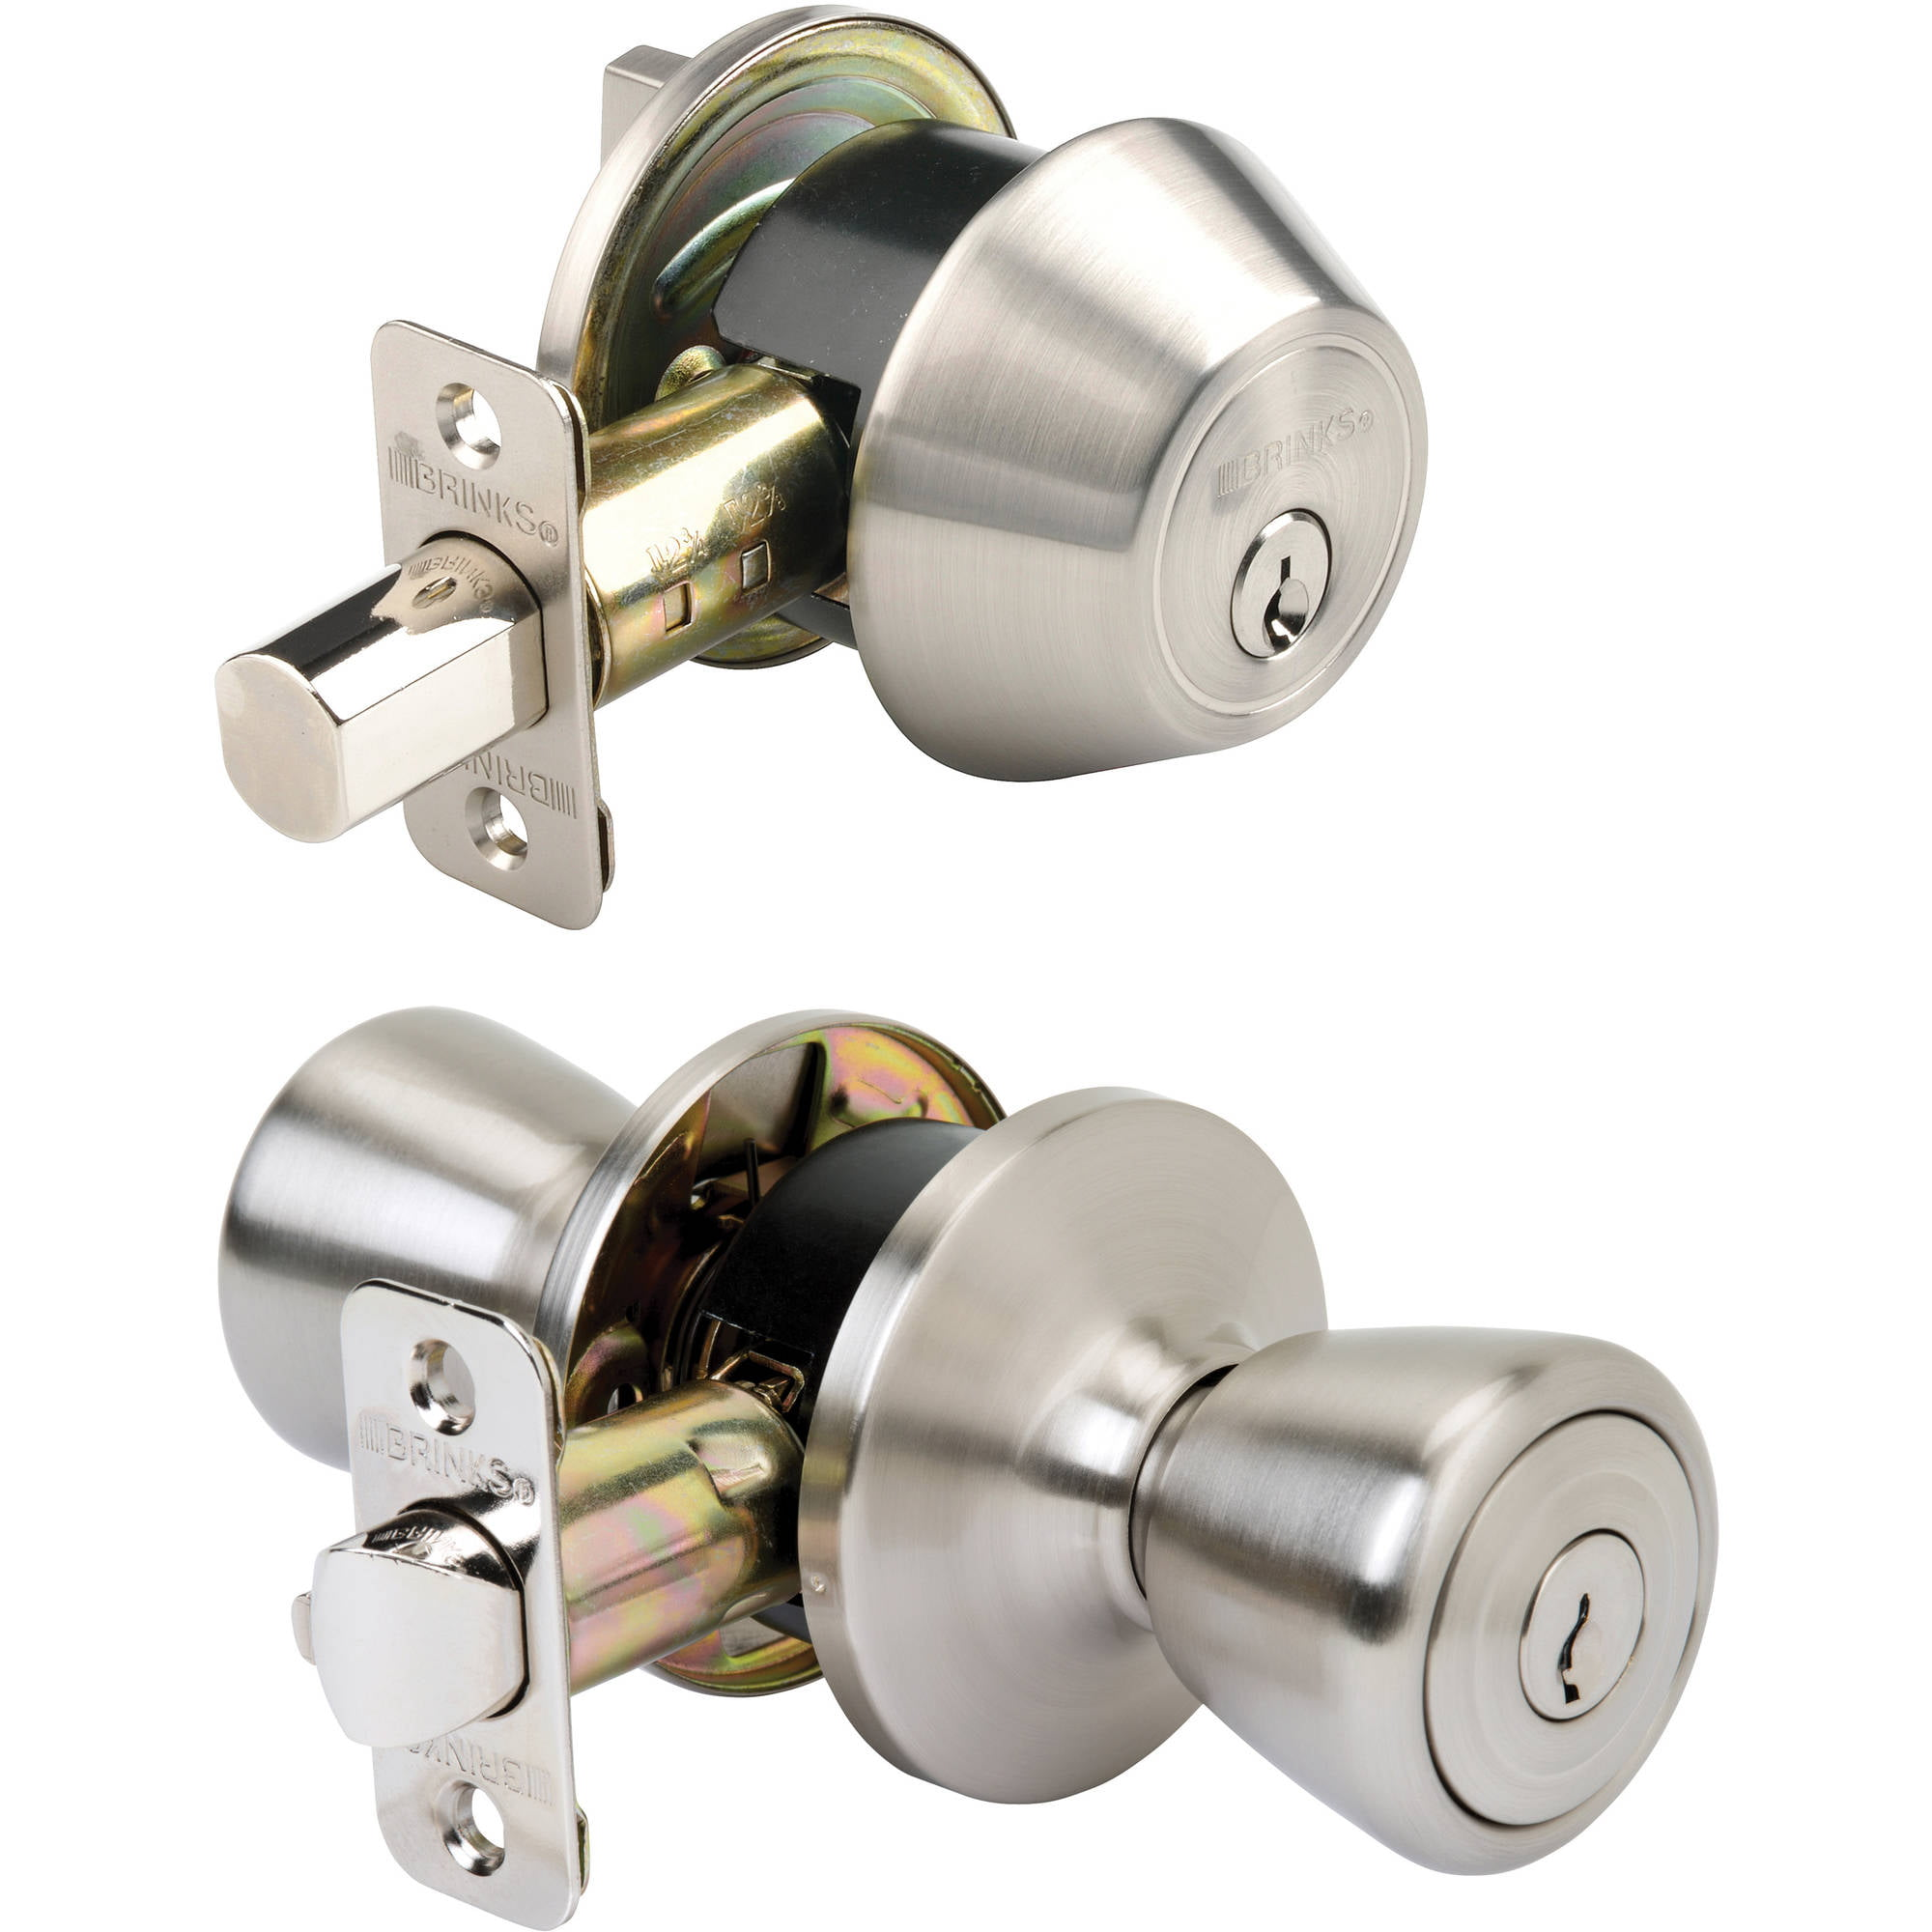 Keyed Door Knobs. Door Locks   Walmart com